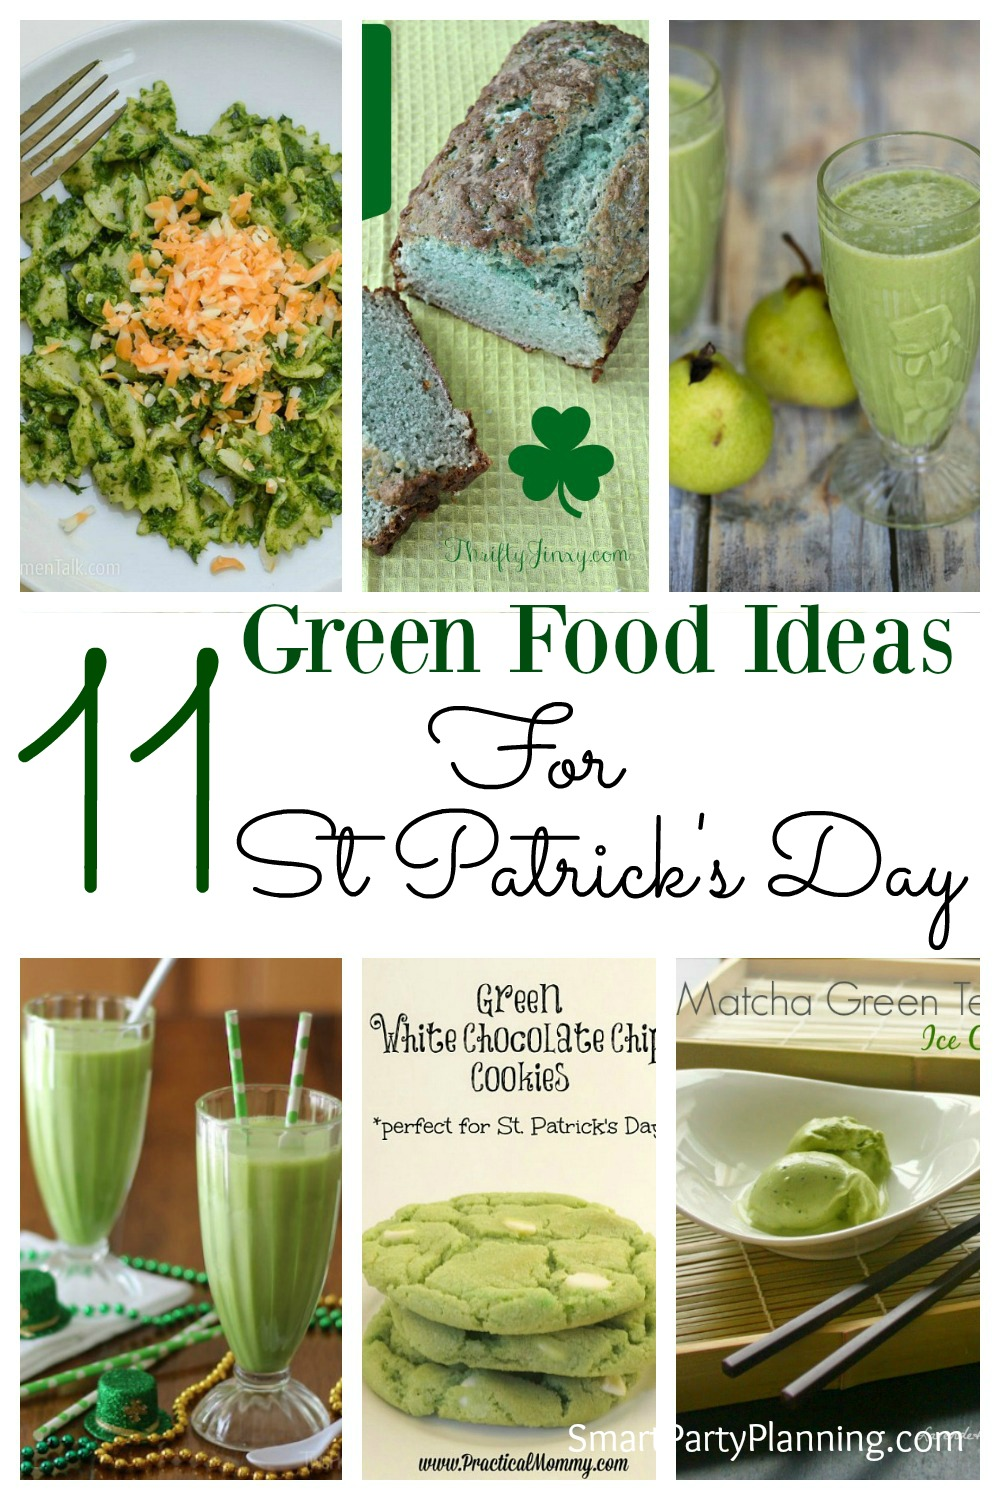 Looking for some green food for St Patrick's Day?  There is a selection of dinner recipes, desserts and drinks that will all help those green food ideas to flow!